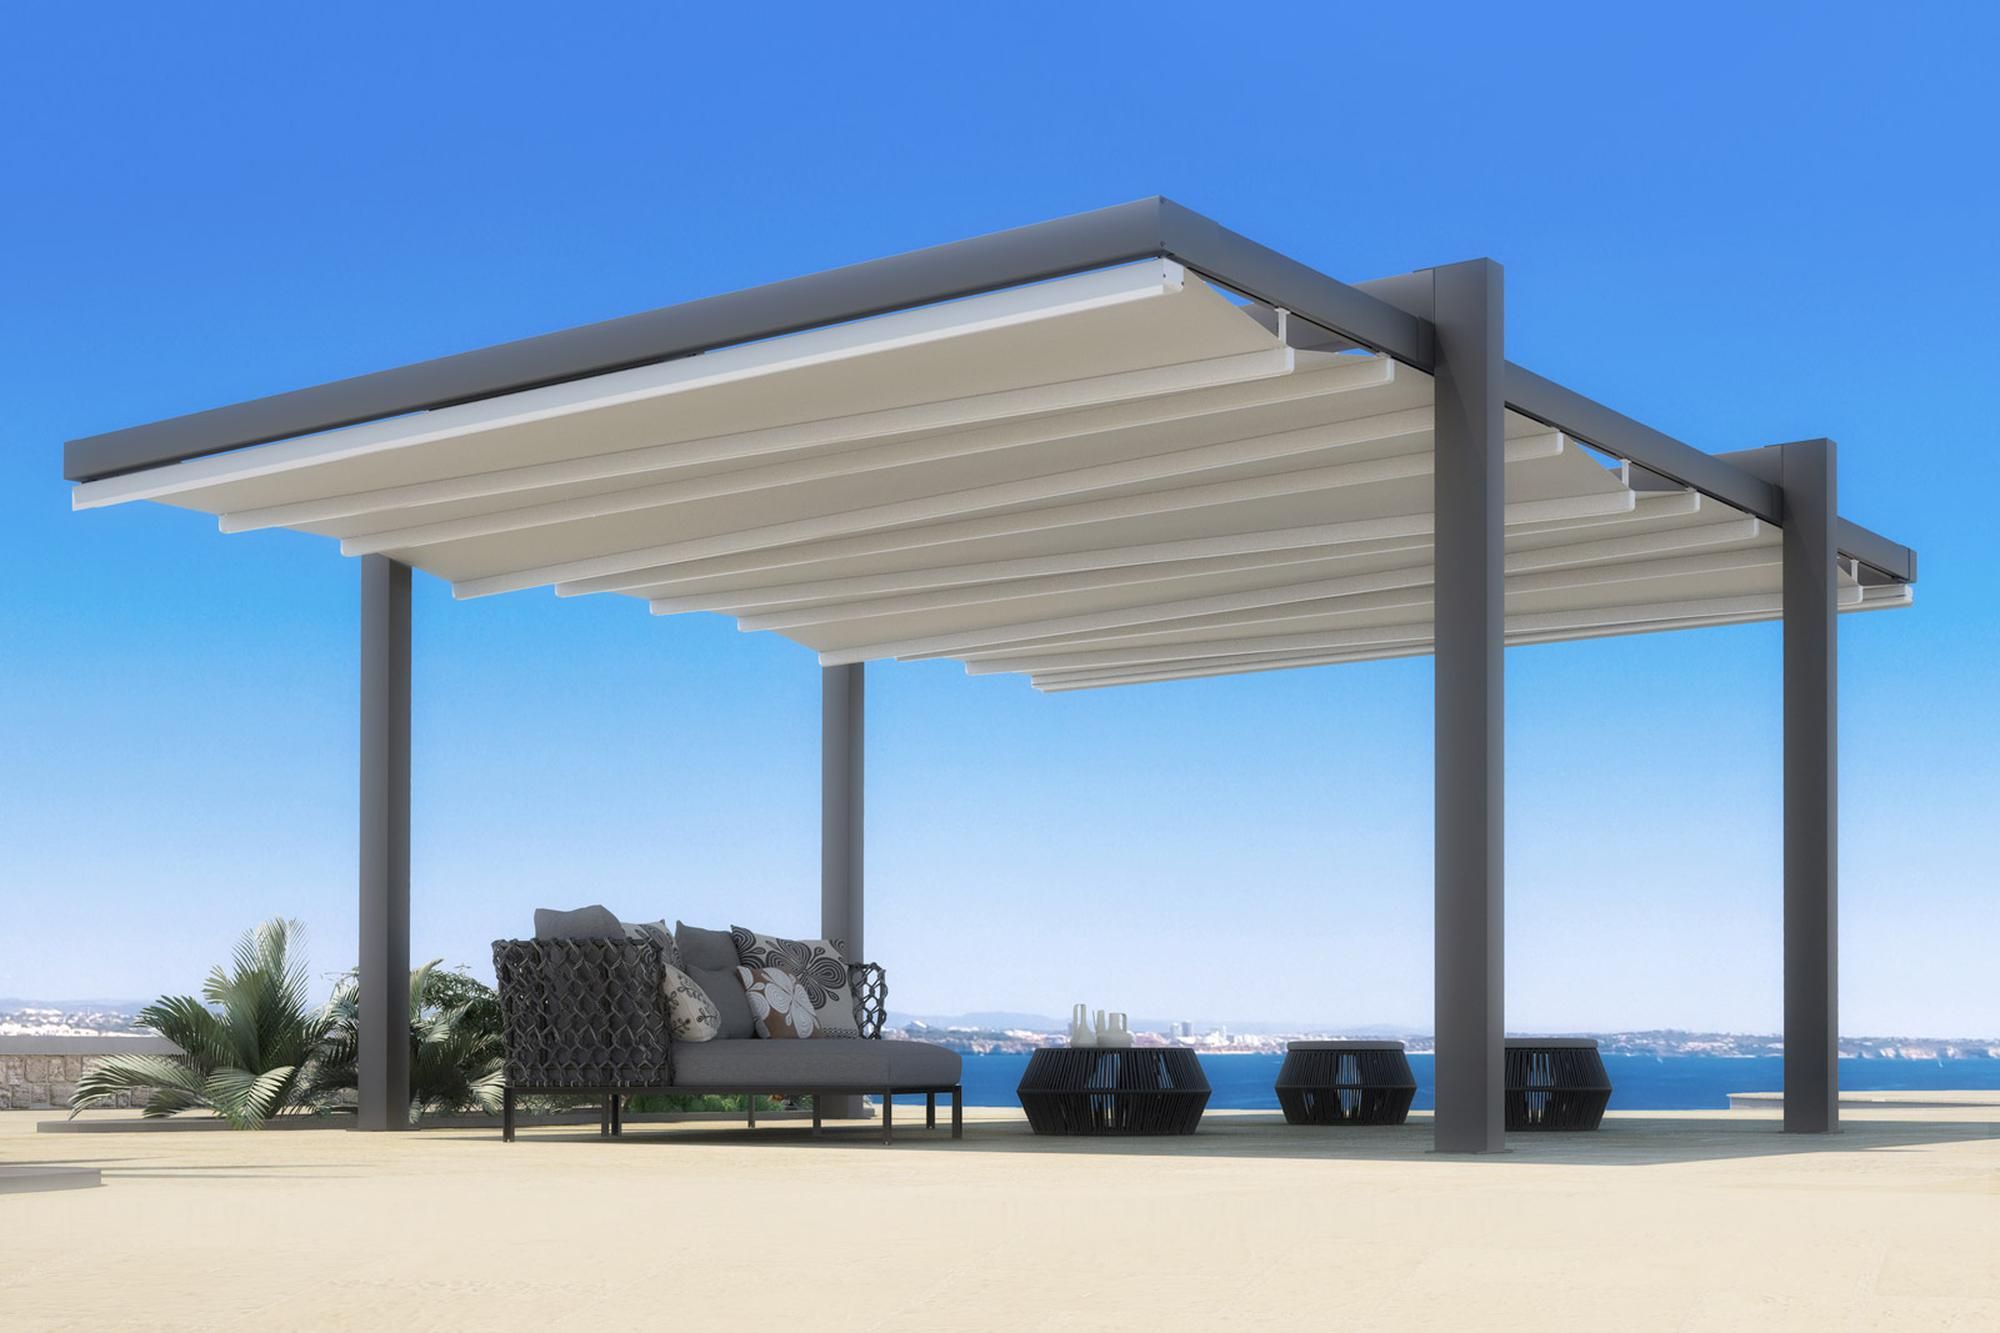 Retractable Waterproof Commercial Residential Free Standing Patio Deck Pergola Cover Awning Aluminum Pergola Pergola Building A Pergola